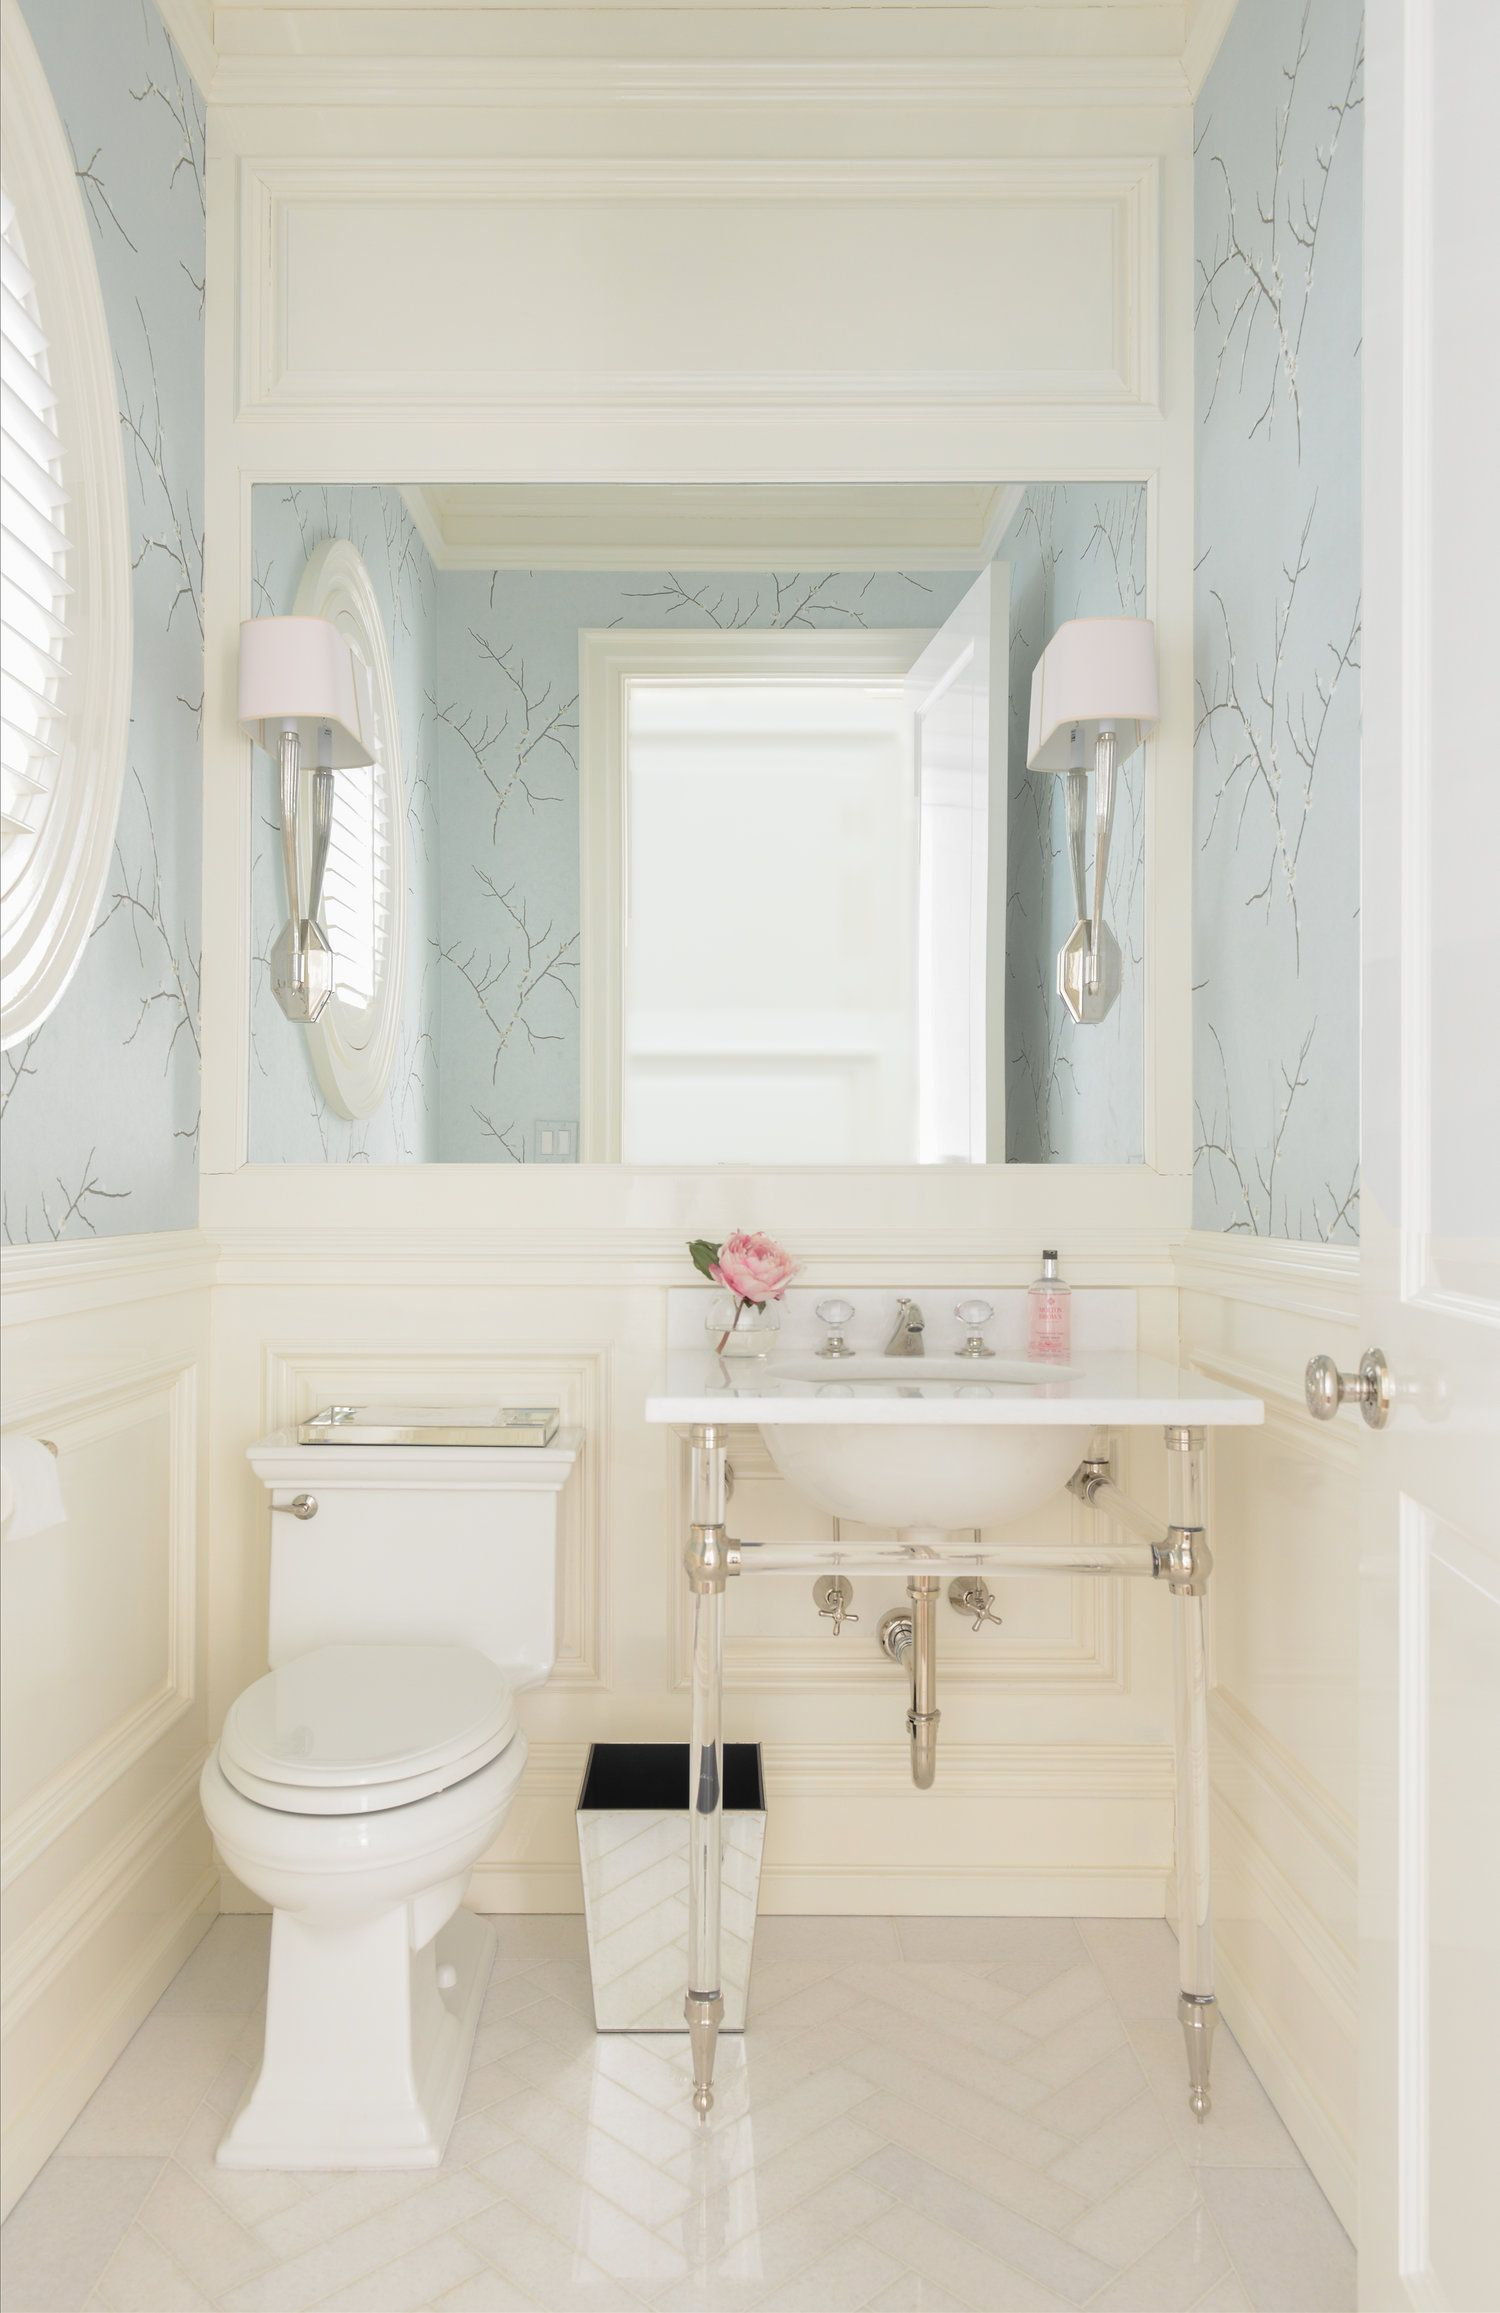 Uptown Townhouse Designer Home Graceful Home Luxe Source Morgan Harrison Home Bathroom Interior Blue Powder Rooms Powder Room Small